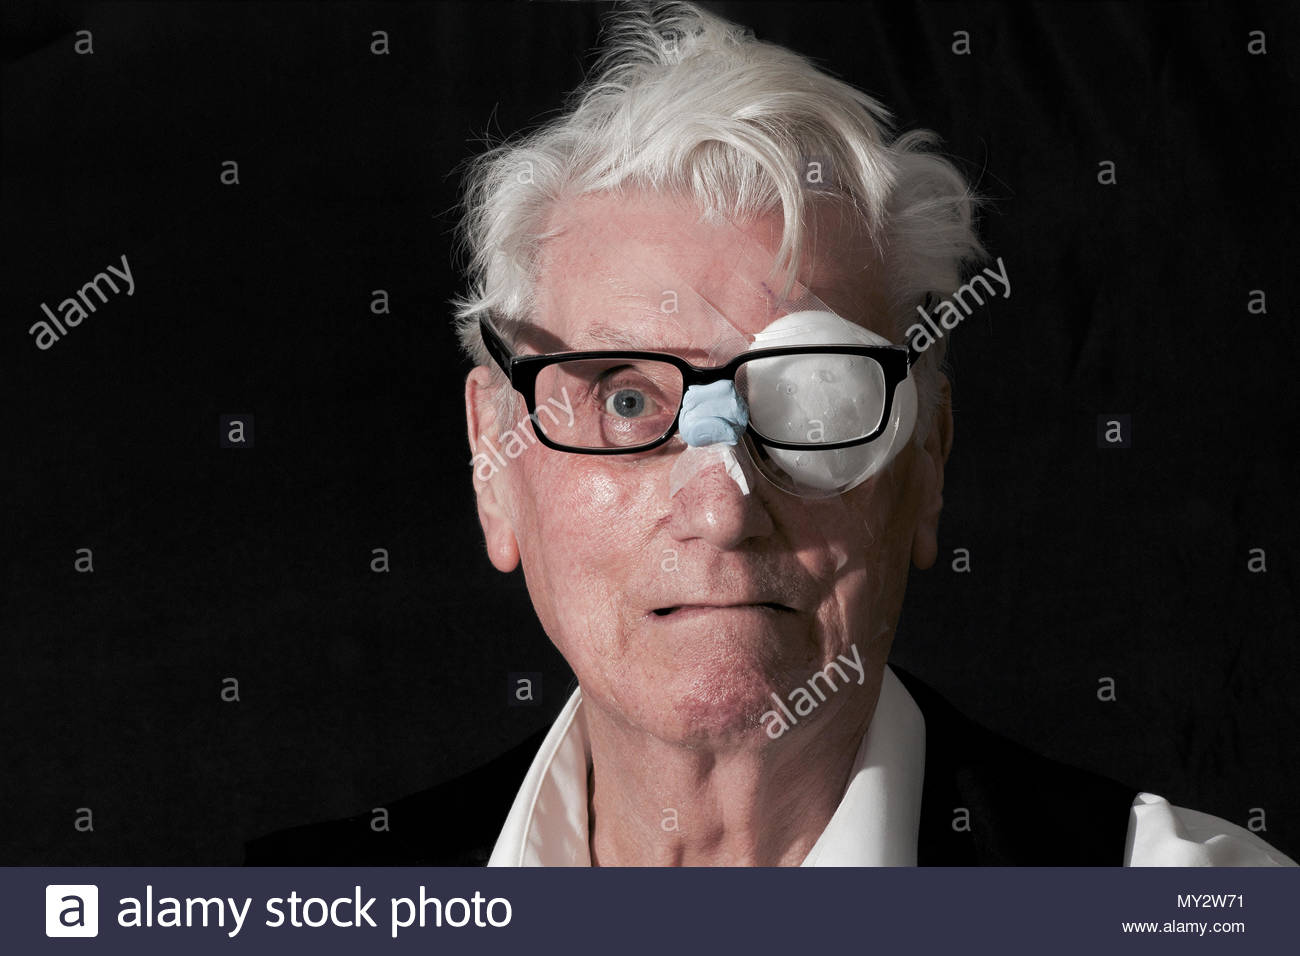 Humour, a Caucasian male patient with a woebegone expression wearing an eye patch following a cataract procedure on his left eye, and wearing spectacl - Stock Image